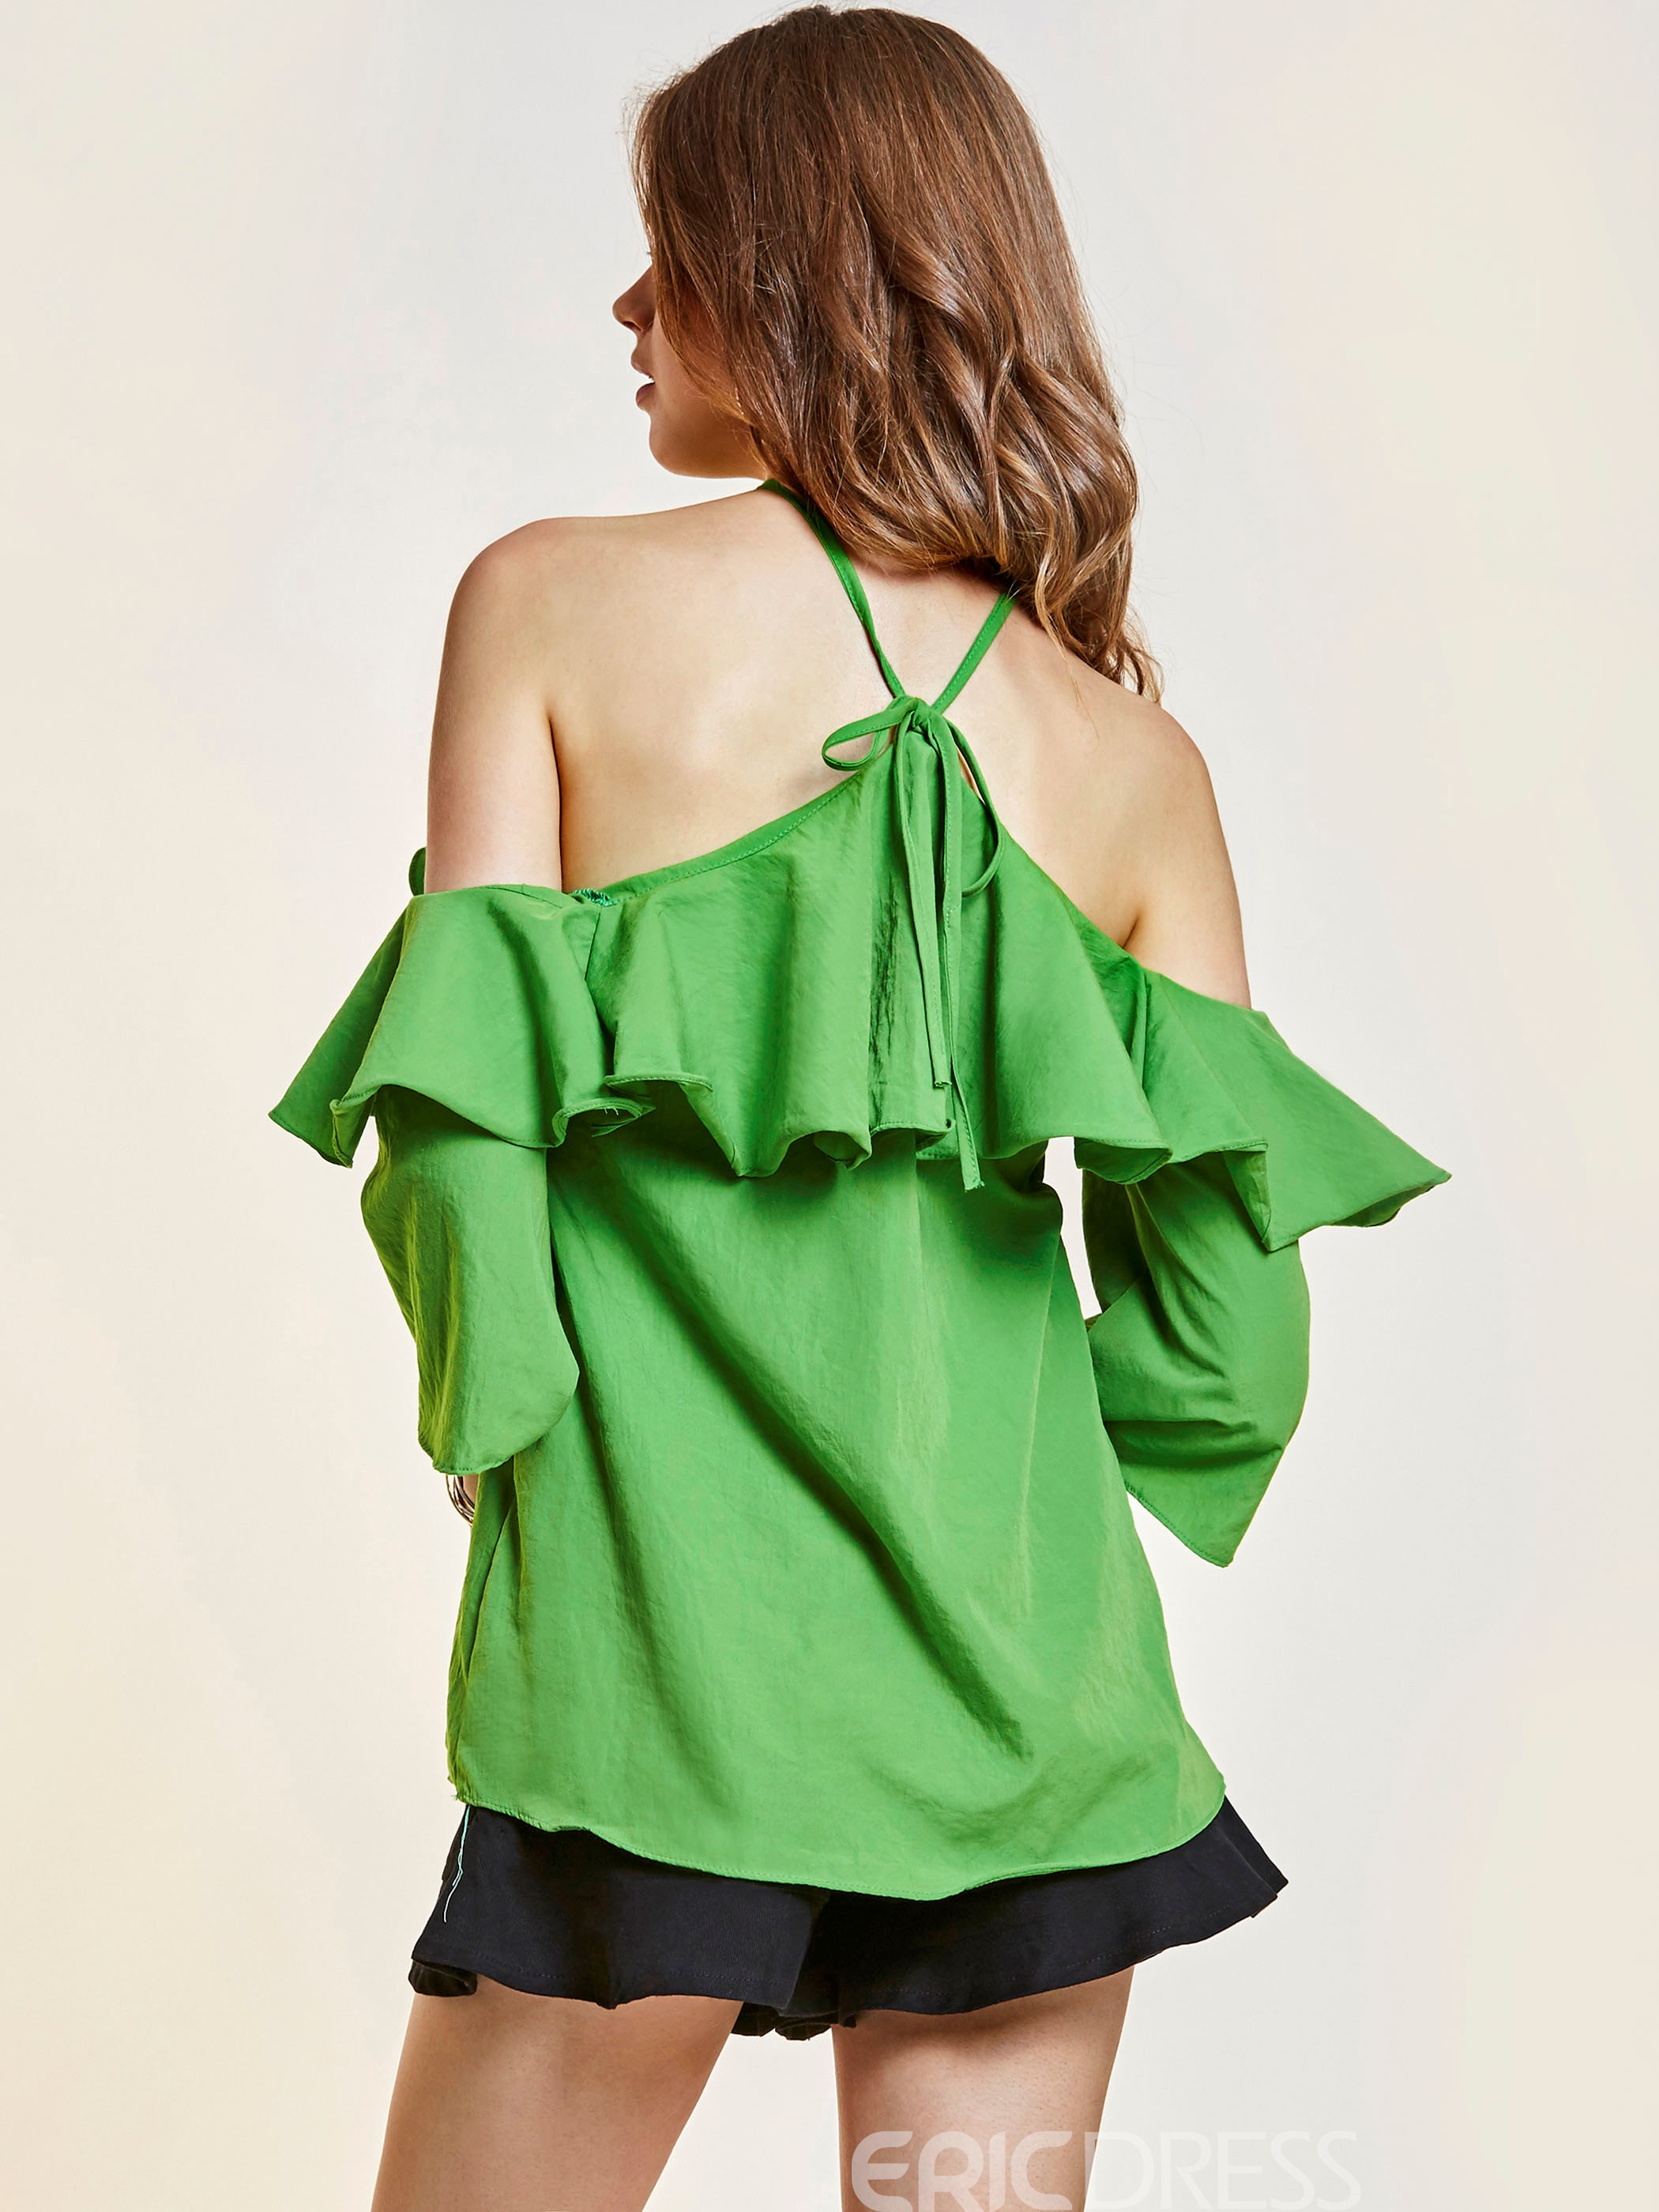 Ericdress Plain Ruffles Backless Lace-Up Blouse